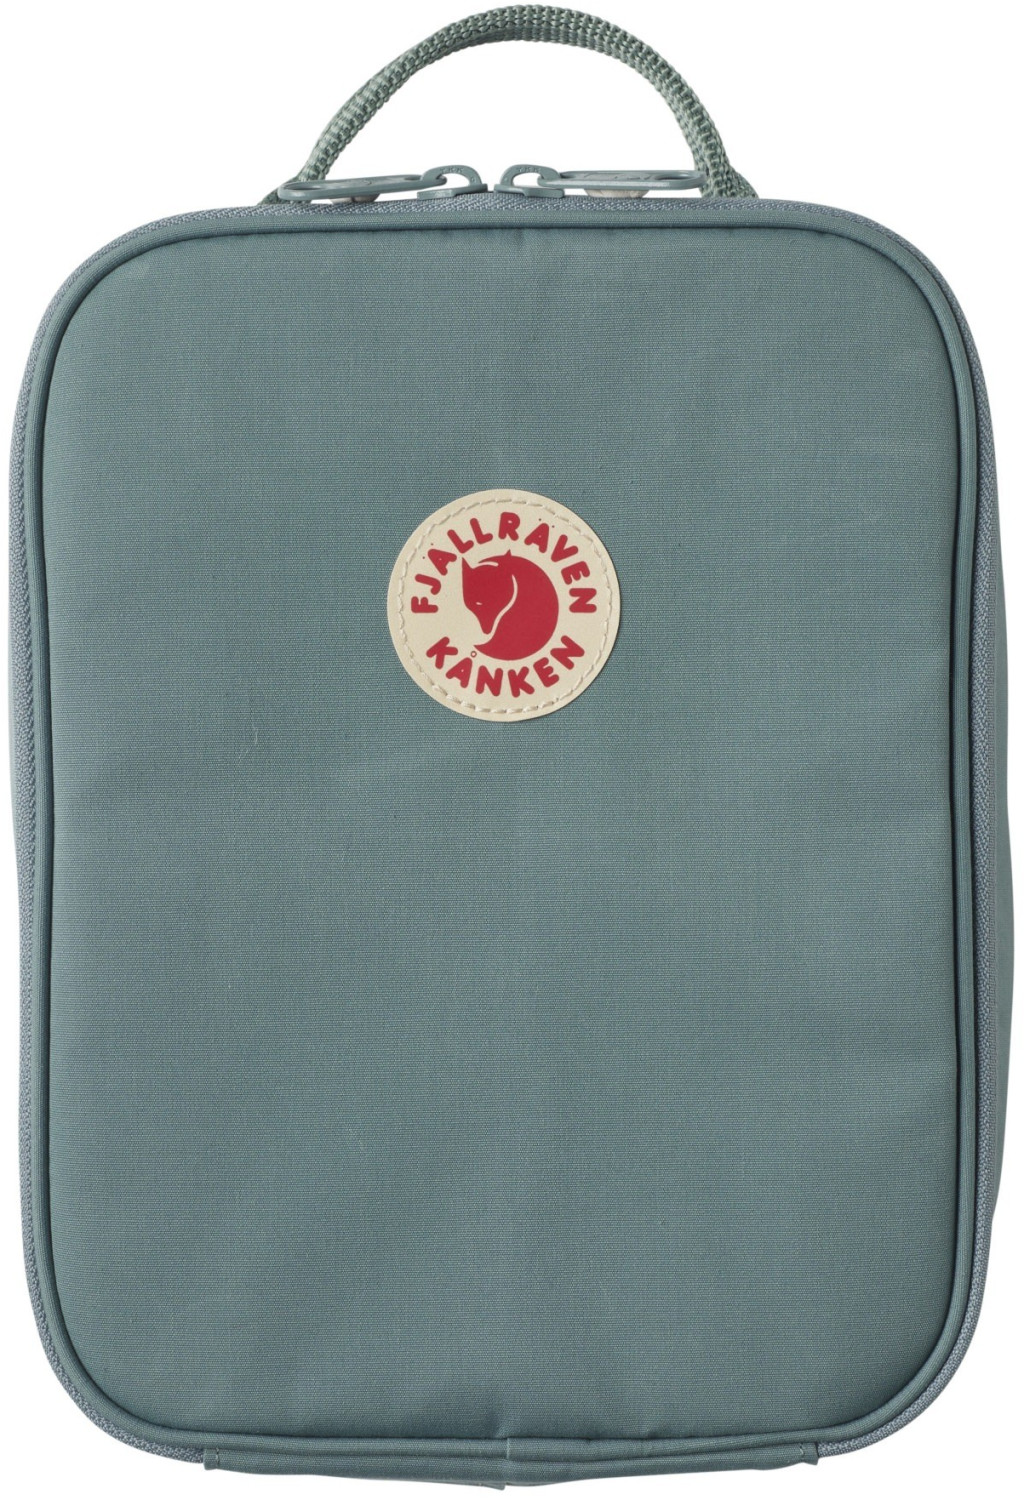 Image of Fjällräven Kånken Mini Cooler Frost Green